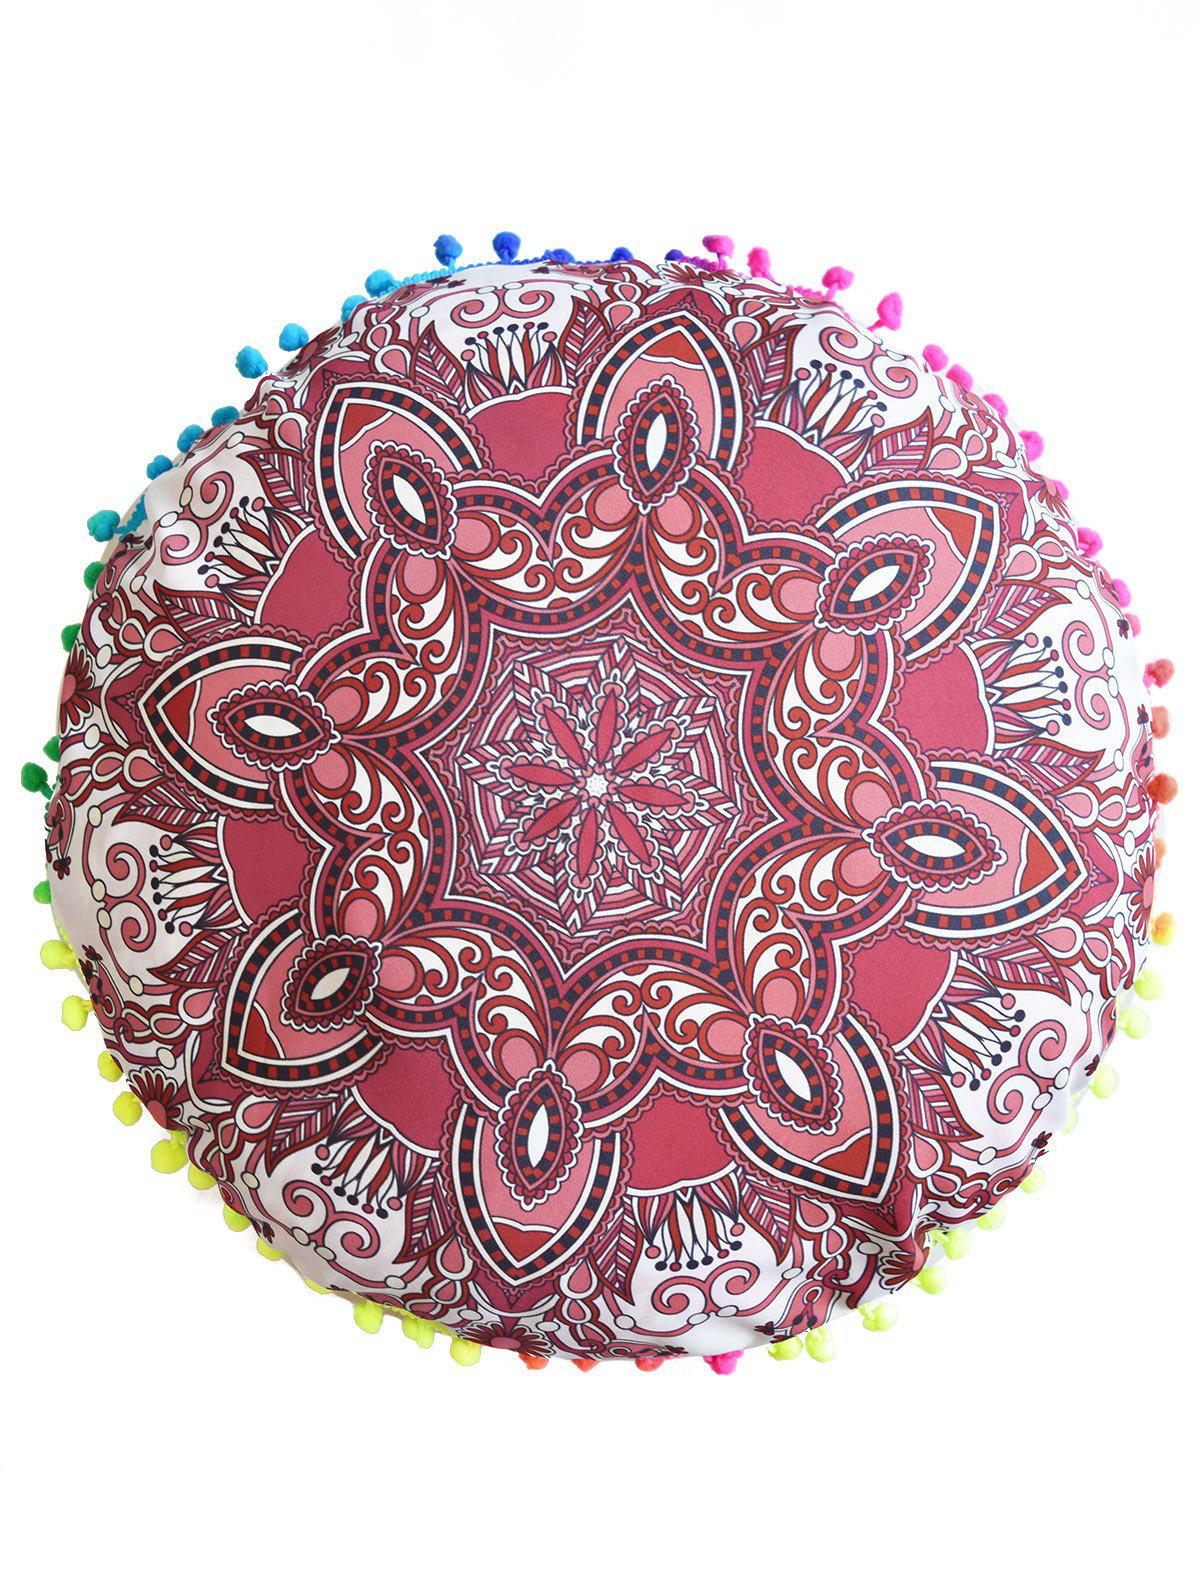 Mandala Print Round Throw Cover Pouf PillowcaseHOME<br><br>Size: DIAMETER: 45CM; Color: RED; Material: Polyester / Cotton; Pattern: Floral; Style: Accent/Decorative; Shape: Round; Weight: 0.0500kg; Package Contents: 1 x Pillow Case;